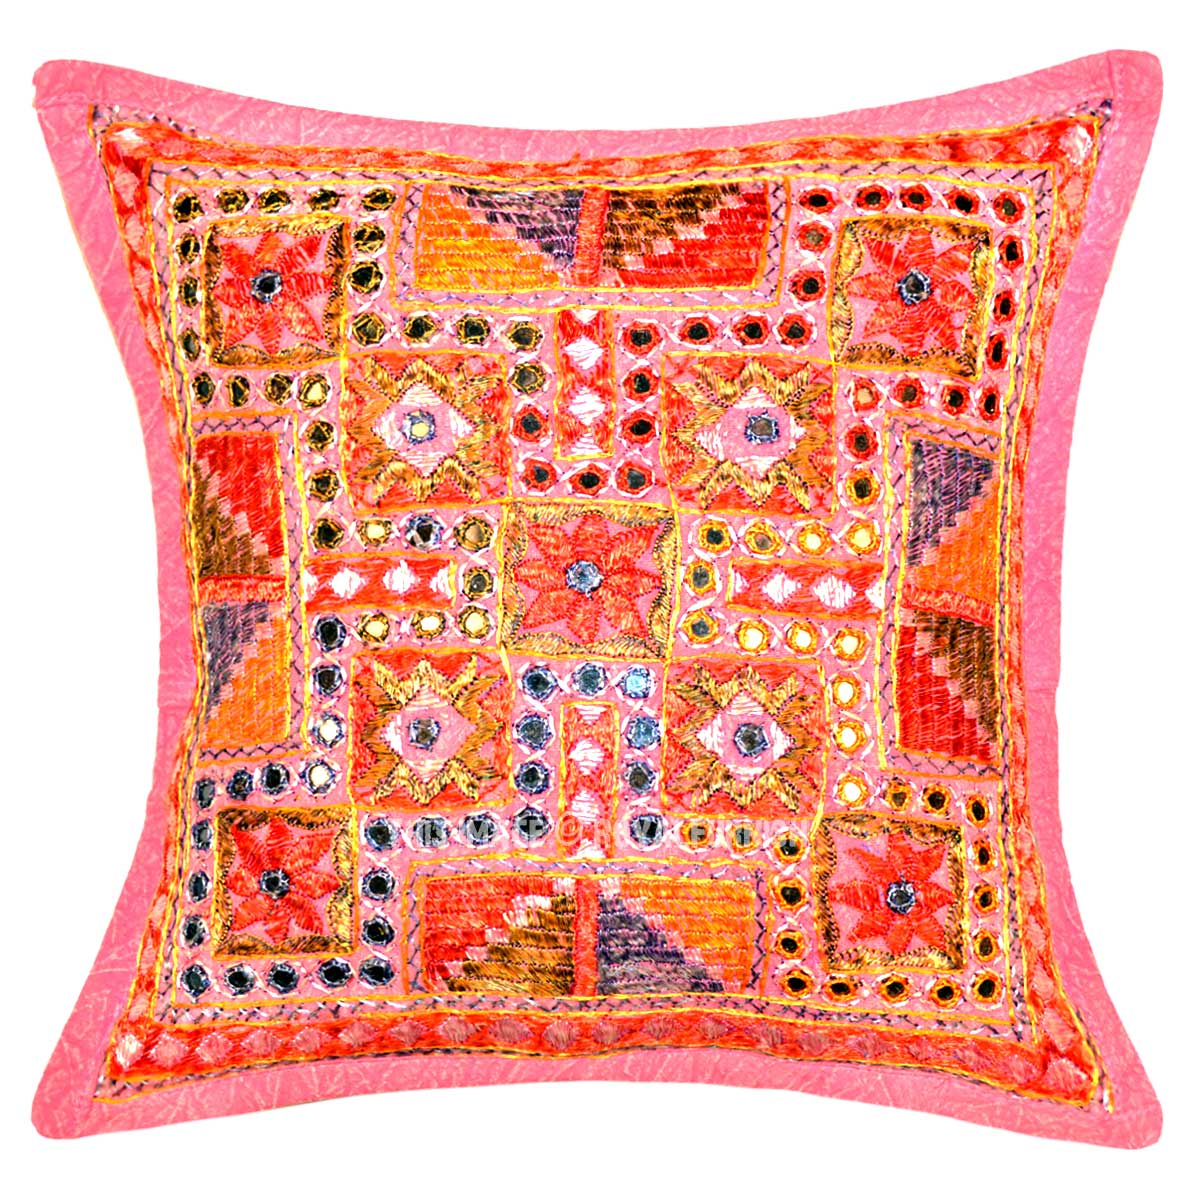 16X16 Pink Multi Maze Mirror Embroidery Design Boho Accent Throw Pillow Cover